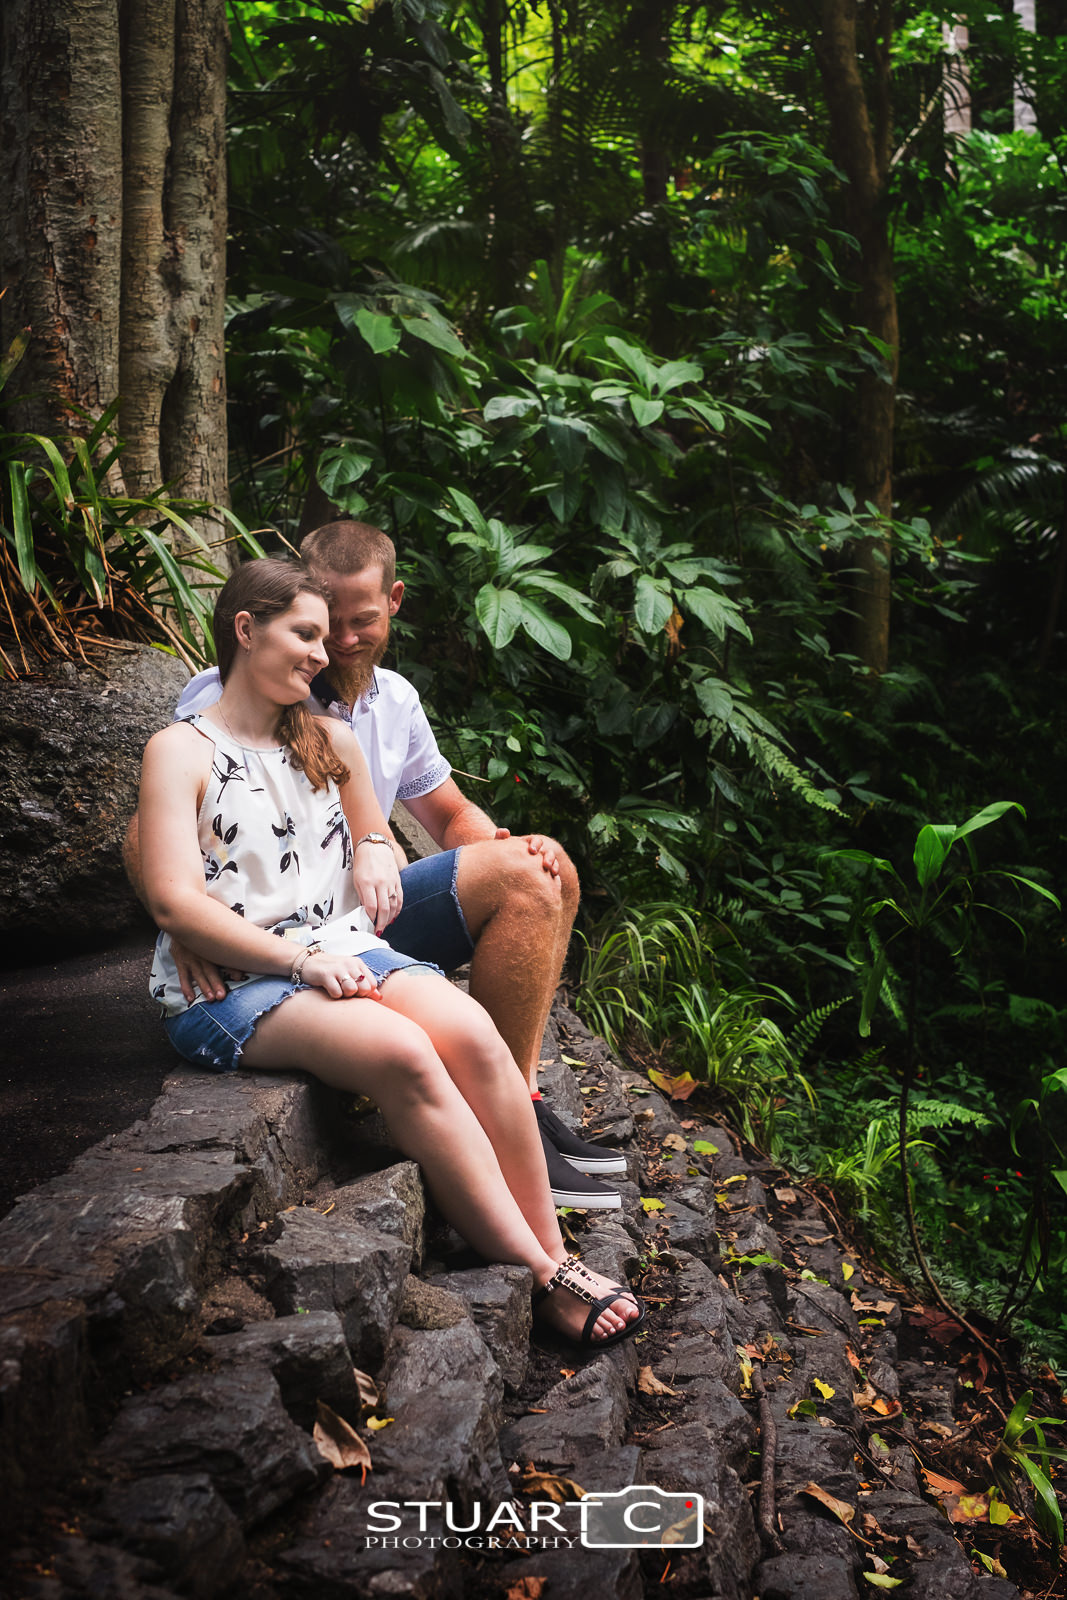 Casey and Gary sitting on a rocky step in among the dense rainforest of Mt Cootha Botanical gardens during their engagement photo session